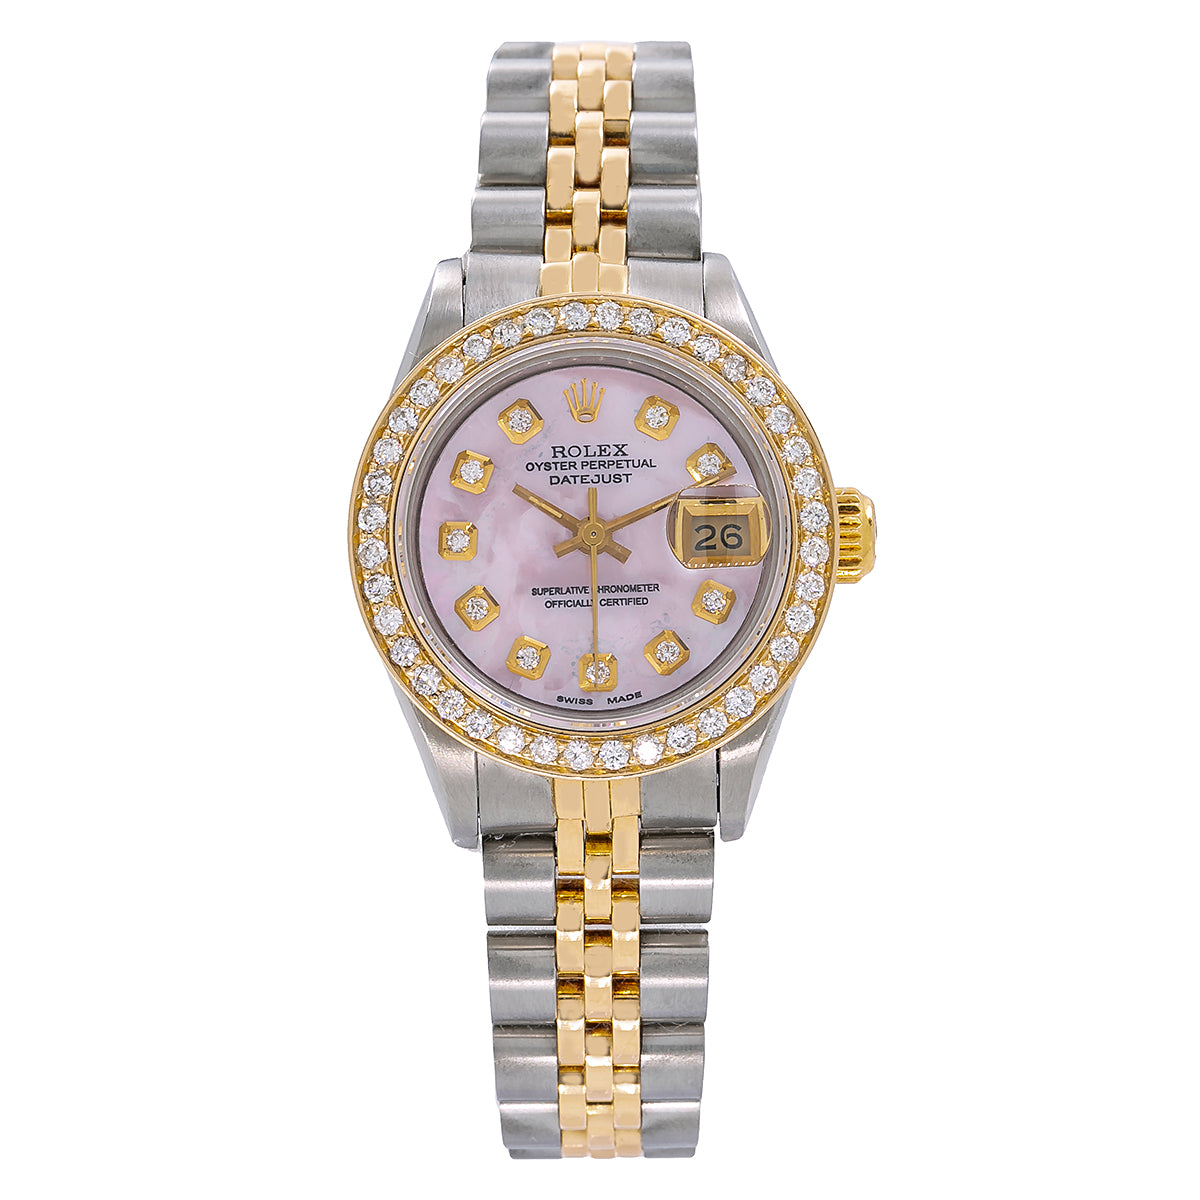 499dd9ee3875f Two Tone Rolex Datejust 69173 26mm Pink Mother of Pearl Dial with 1.3C - OMI  Jewelry